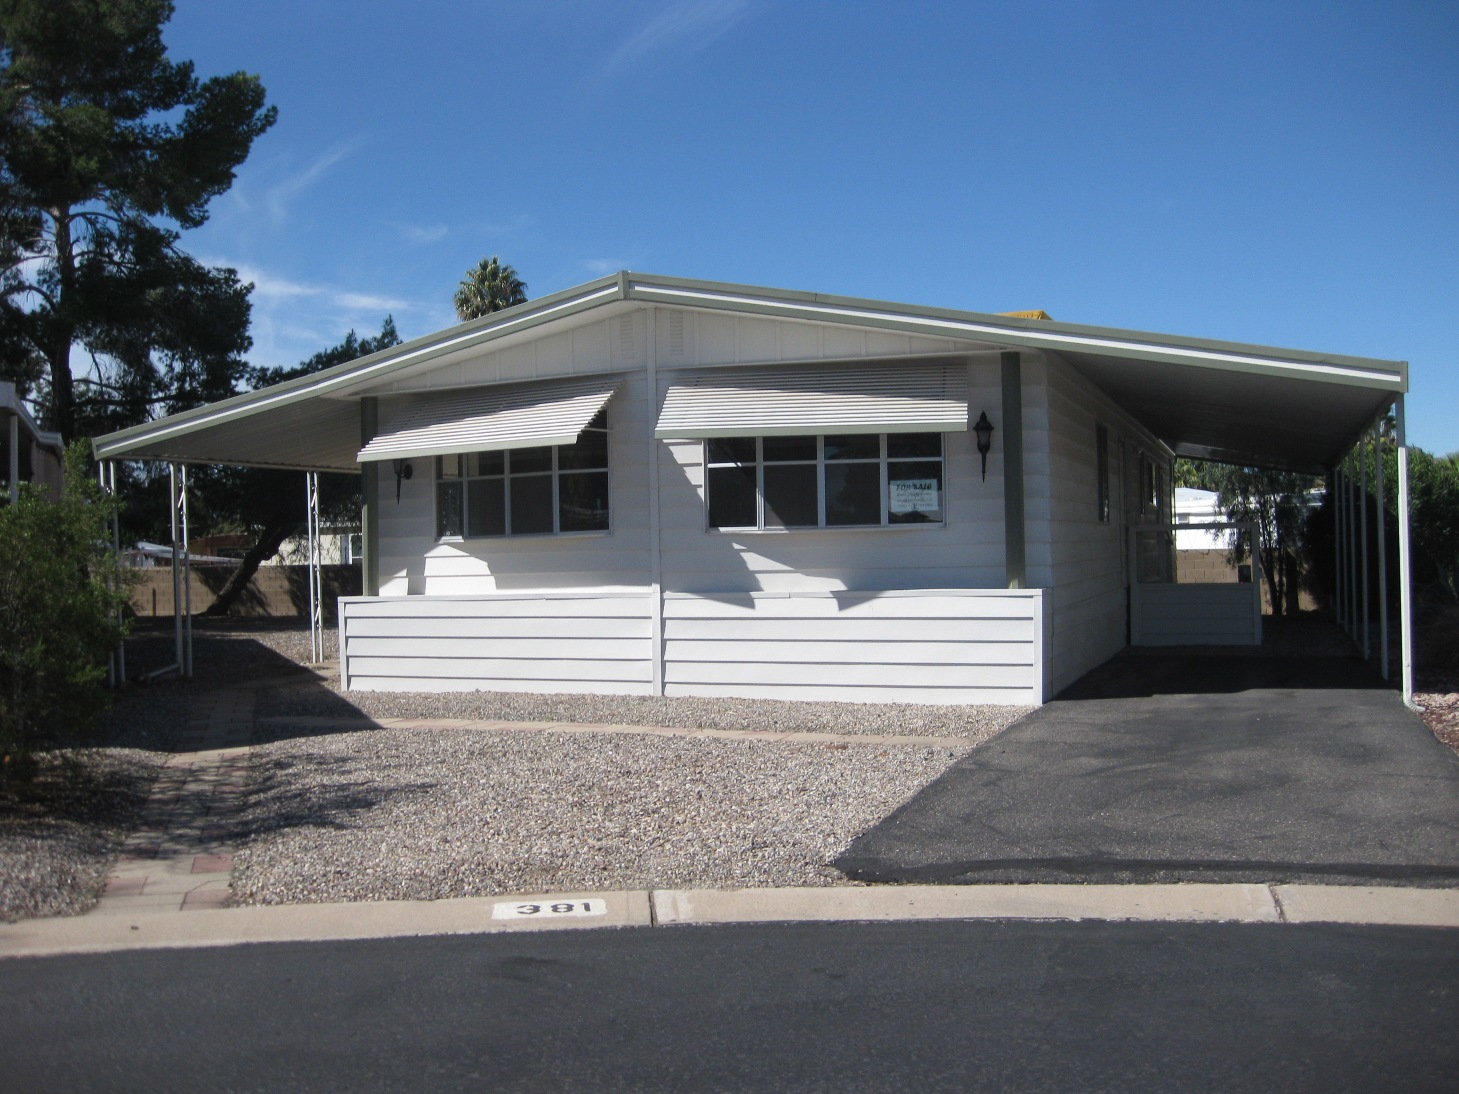 Used double wide mobile homes pictures to pin on pinterest for Large modular homes